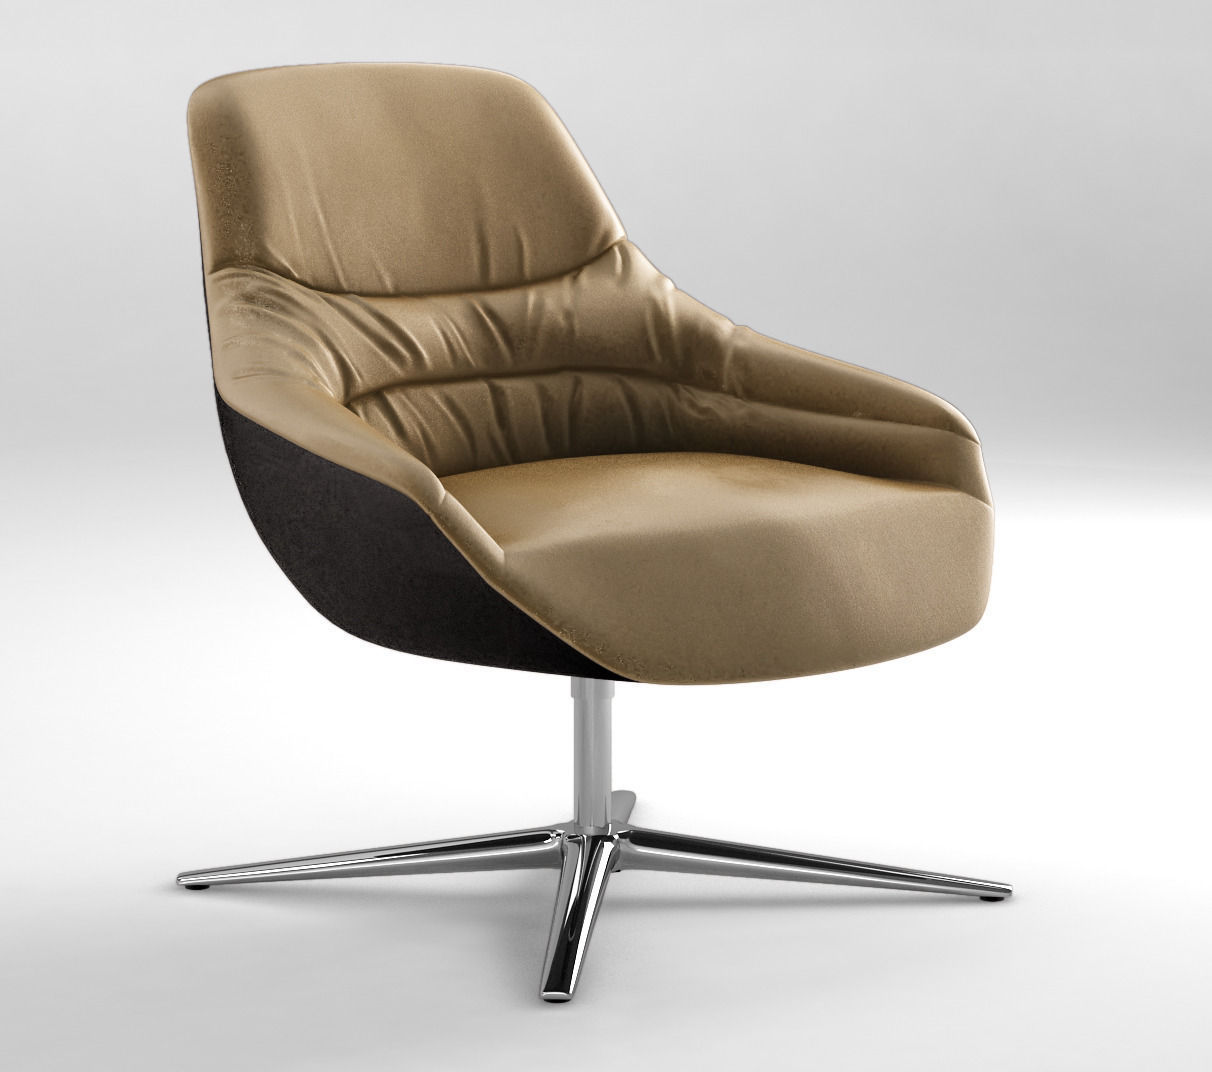 Walter knoll kyo lounge chair 2015 3d model max obj for Model furniture